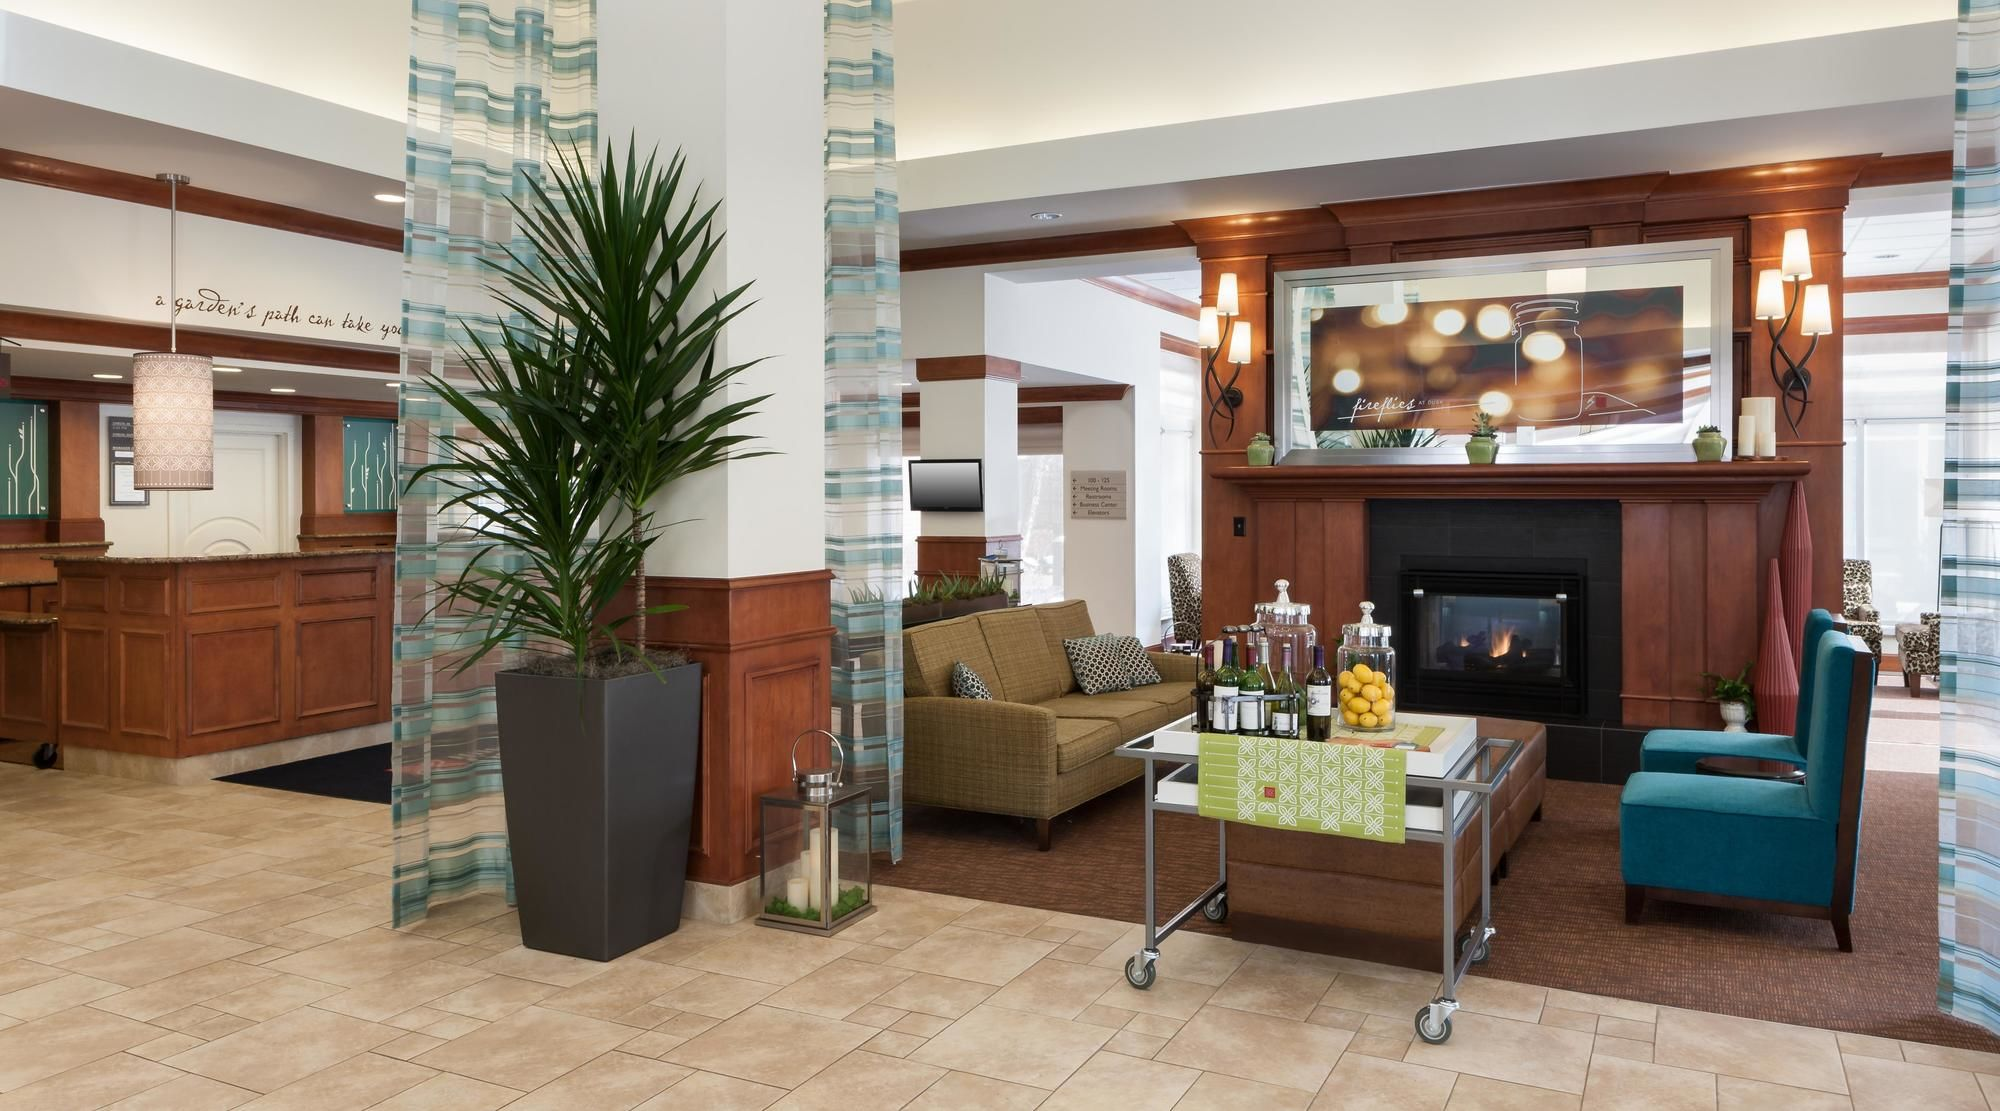 maple grove hotel coupons for maple grove minnesota. Black Bedroom Furniture Sets. Home Design Ideas